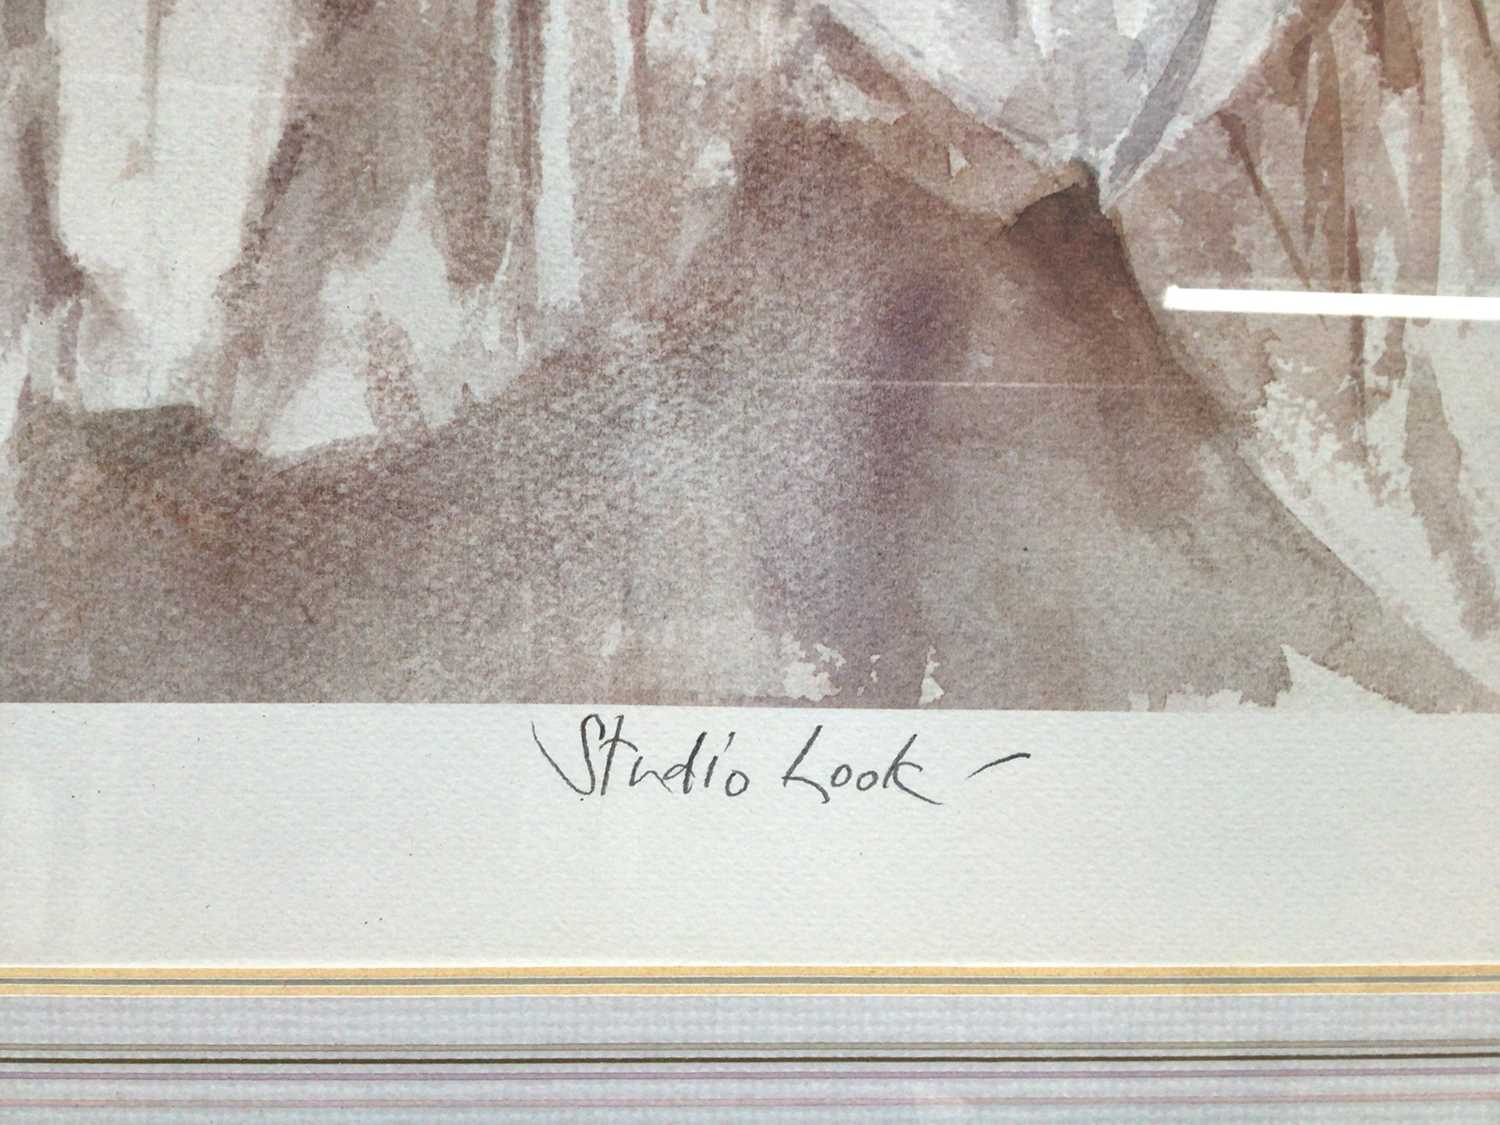 Gordon King (b.1939) signed limited edition lithograph - Studio Look, 72/295, 41cm x 54cm, in glazed - Image 3 of 10